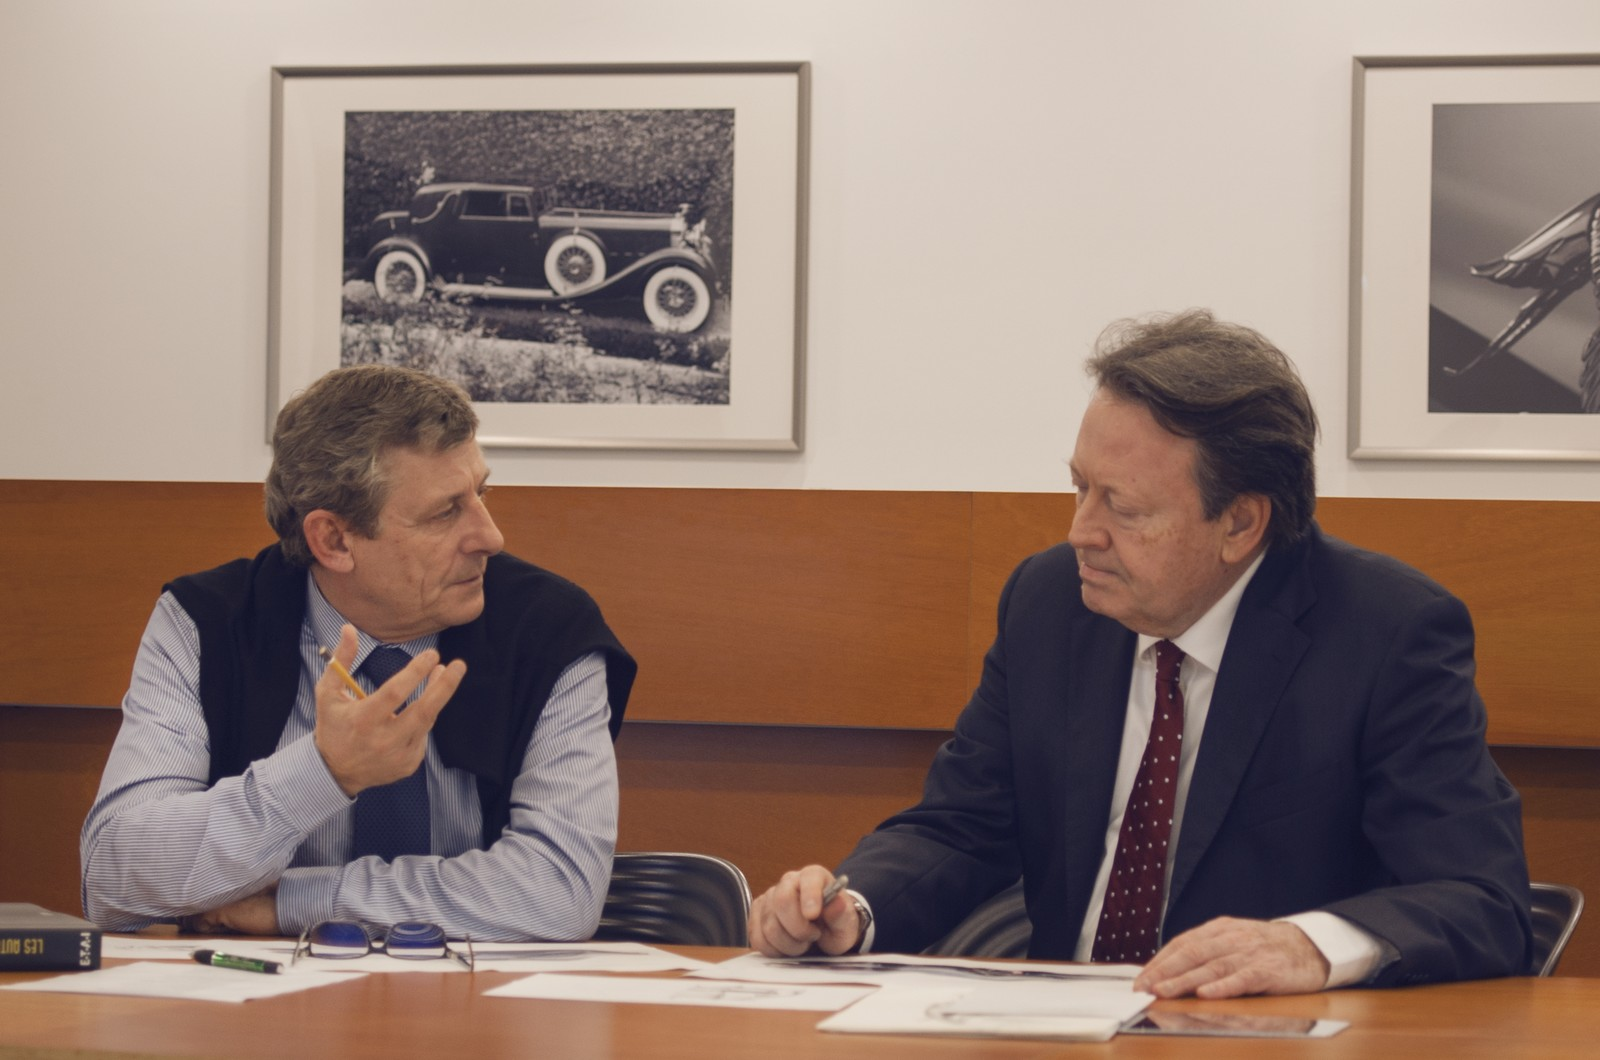 Olivier Boulay (left) and Erwin Leo Himmel (right) have joined forces to bring Hispano Suiza back to life. Among others...